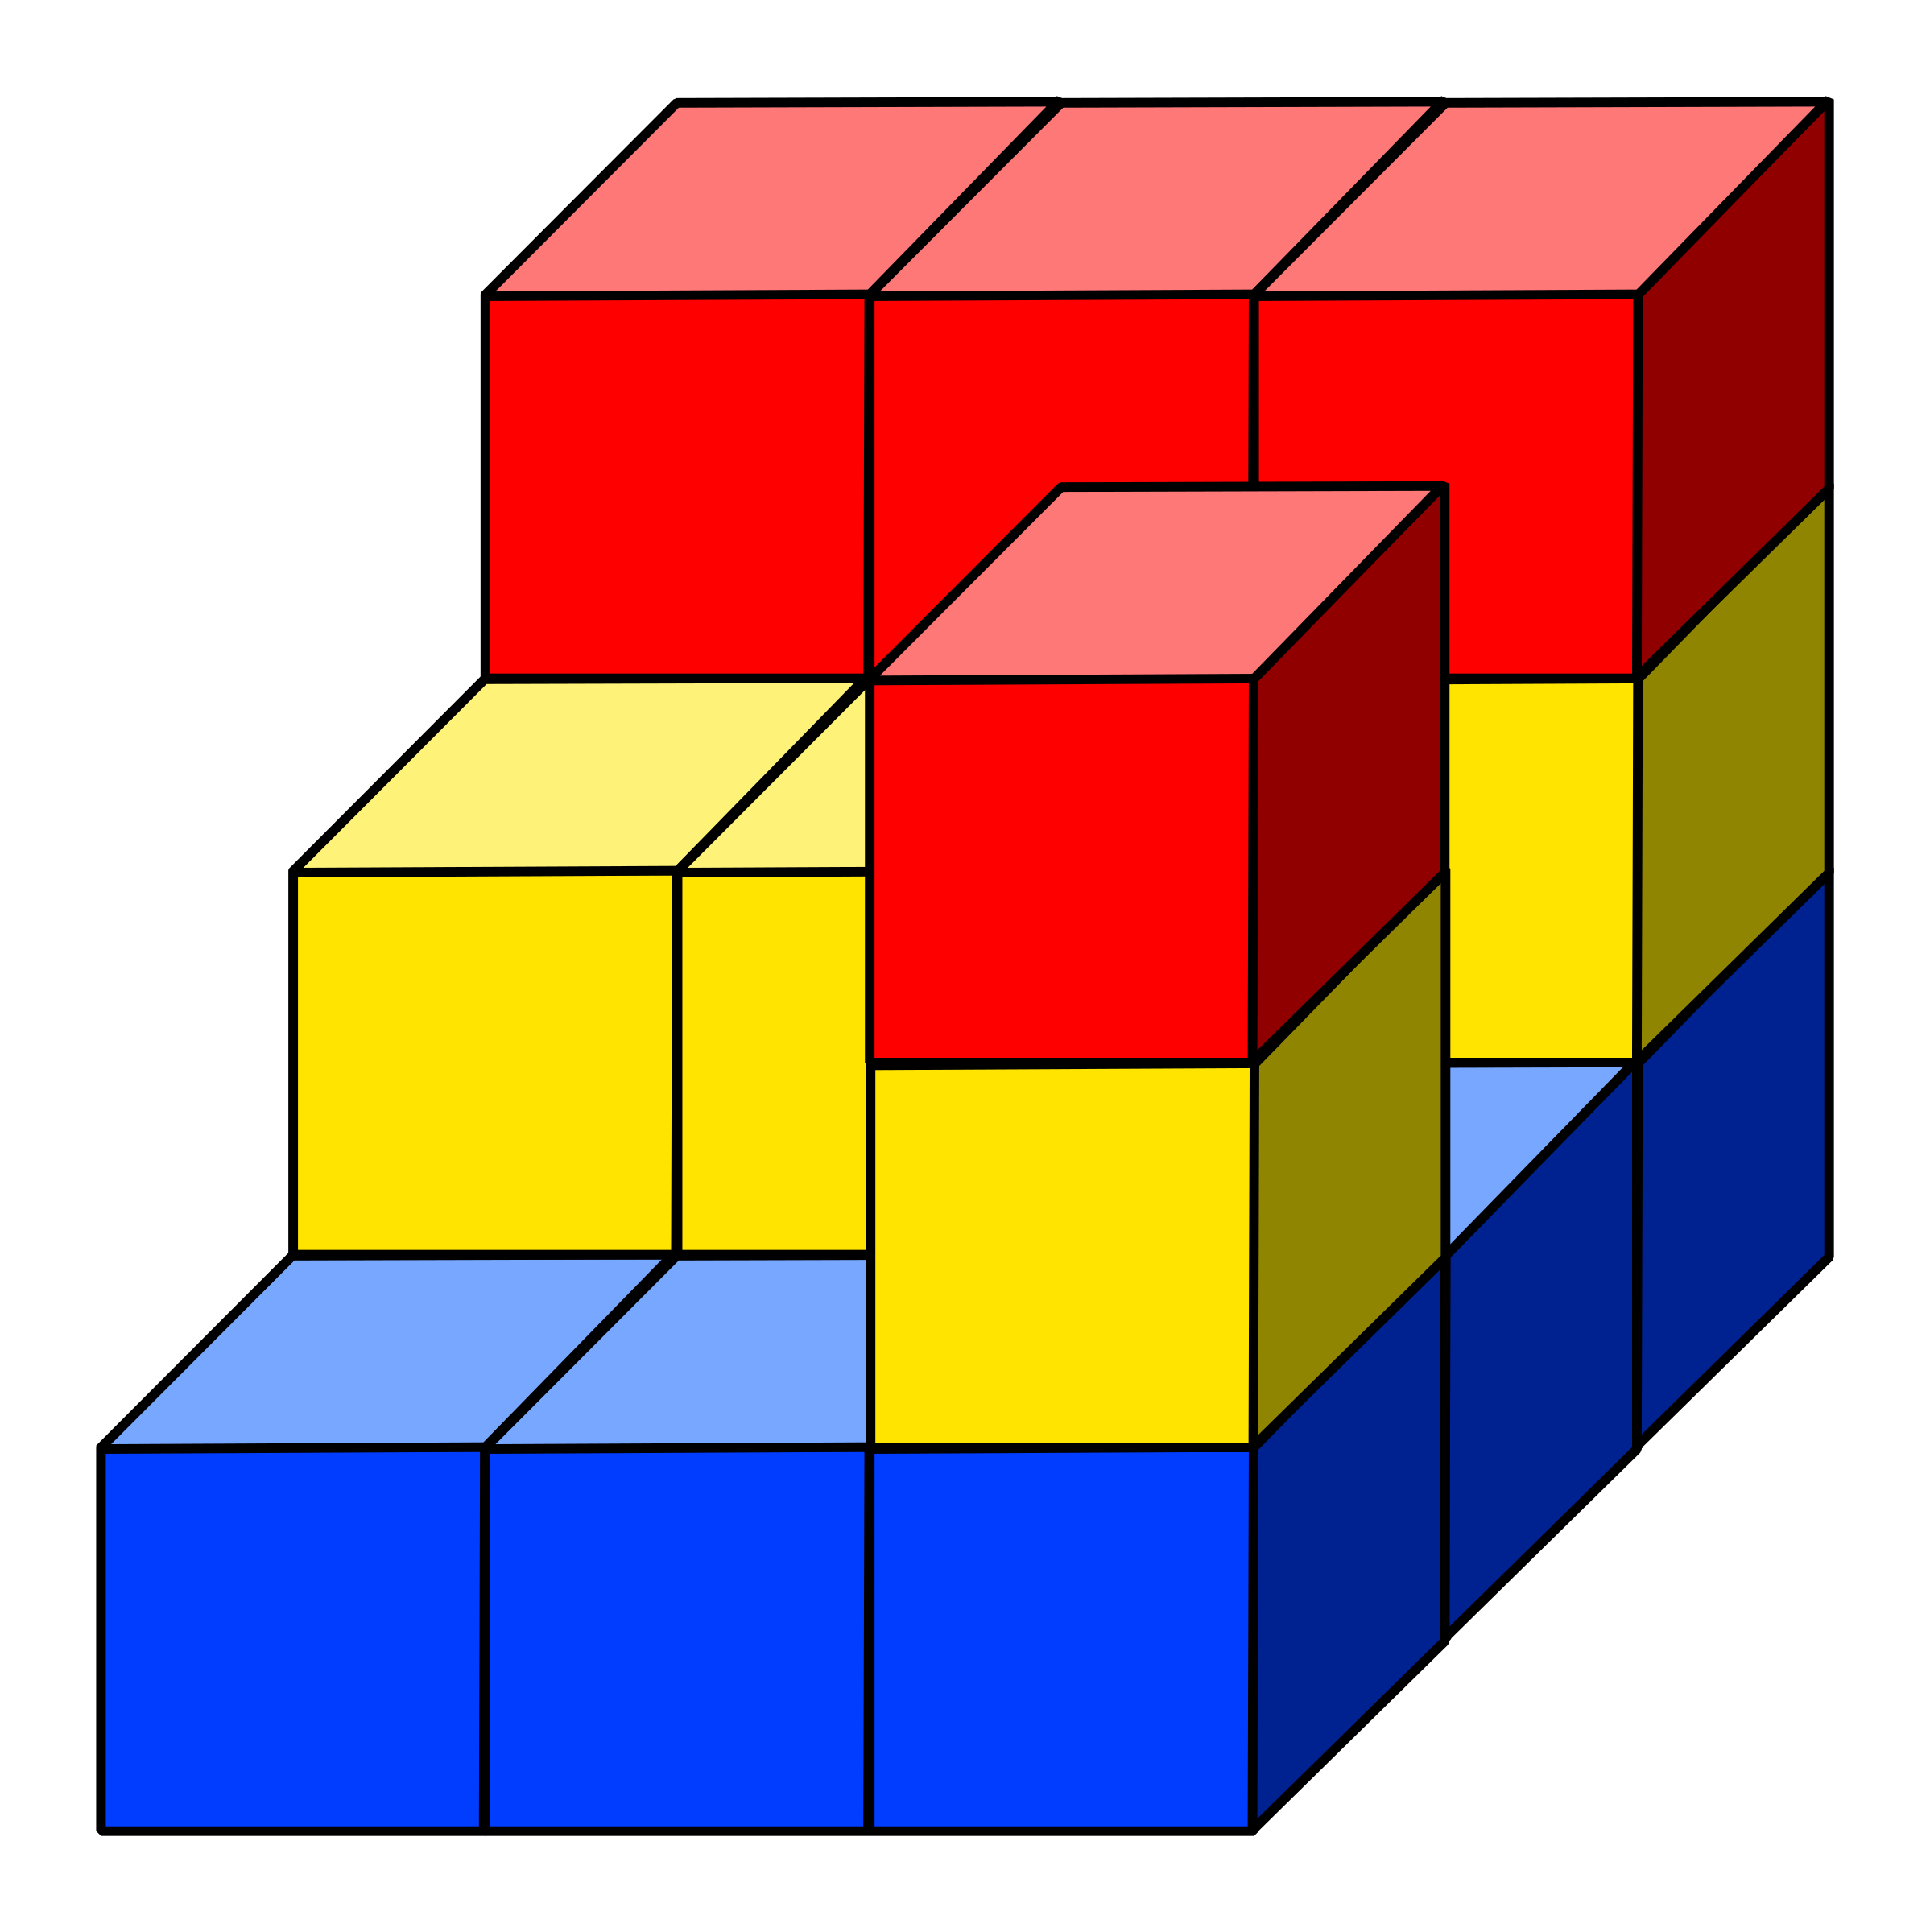 jpg transparent stock Why clipart cubes. Cube tower big image